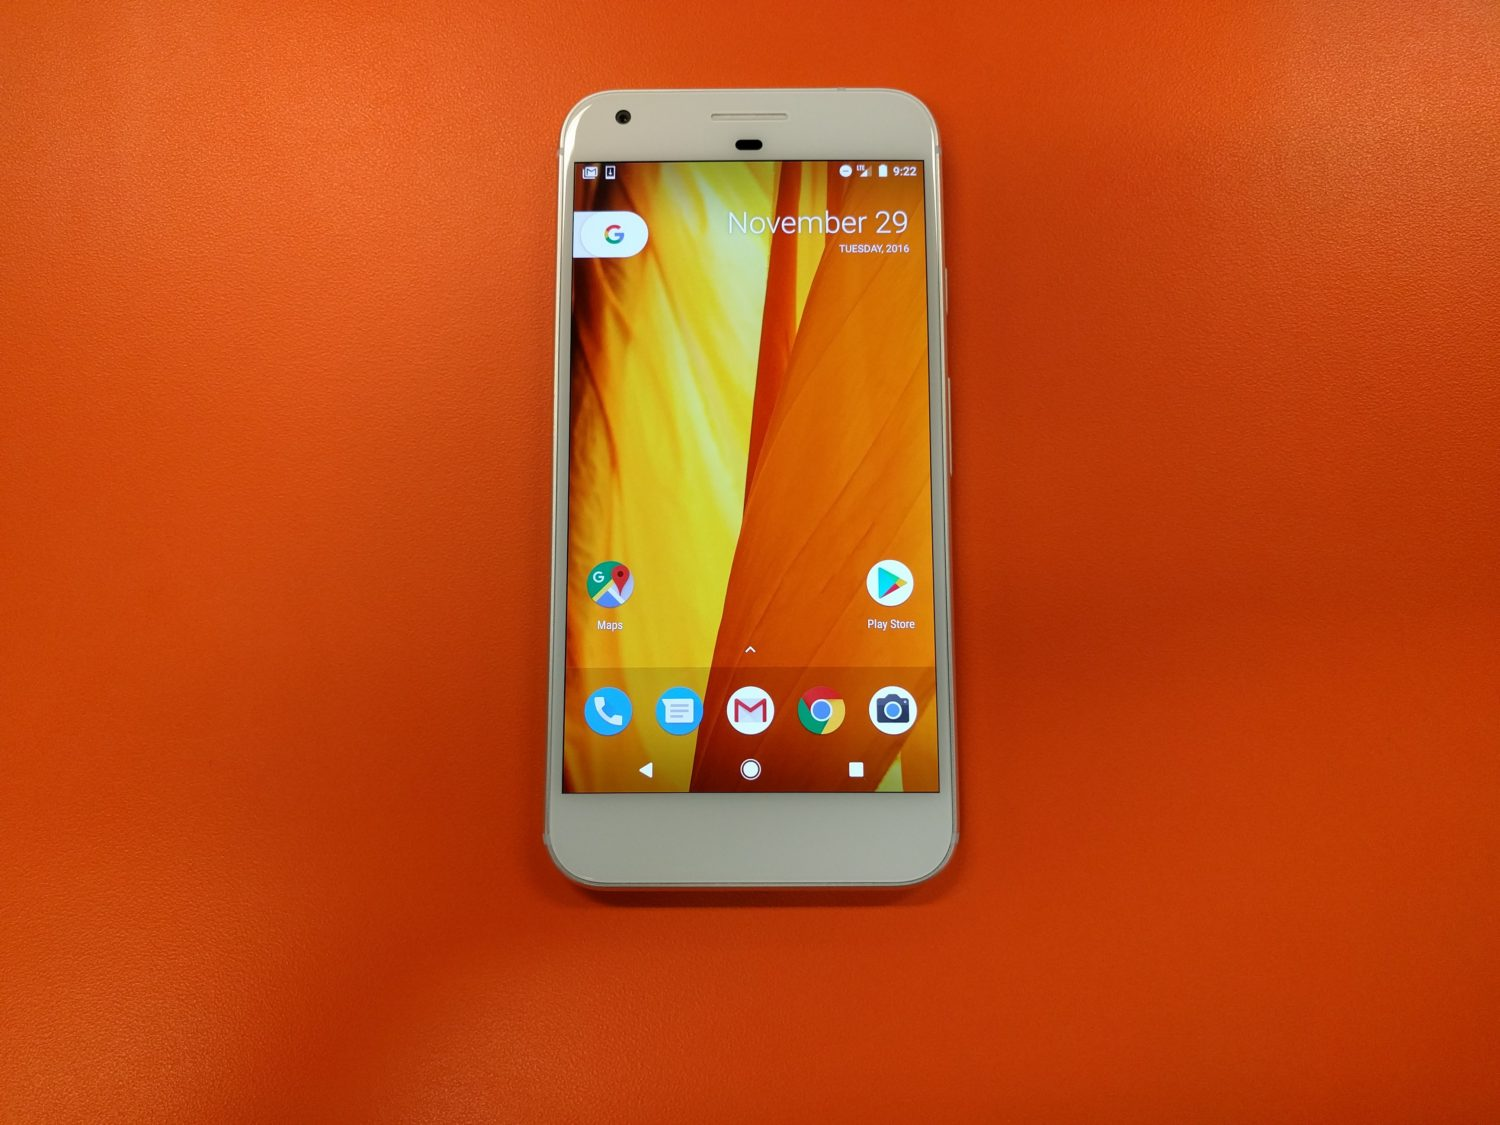 The All-New Pixel XL From Google